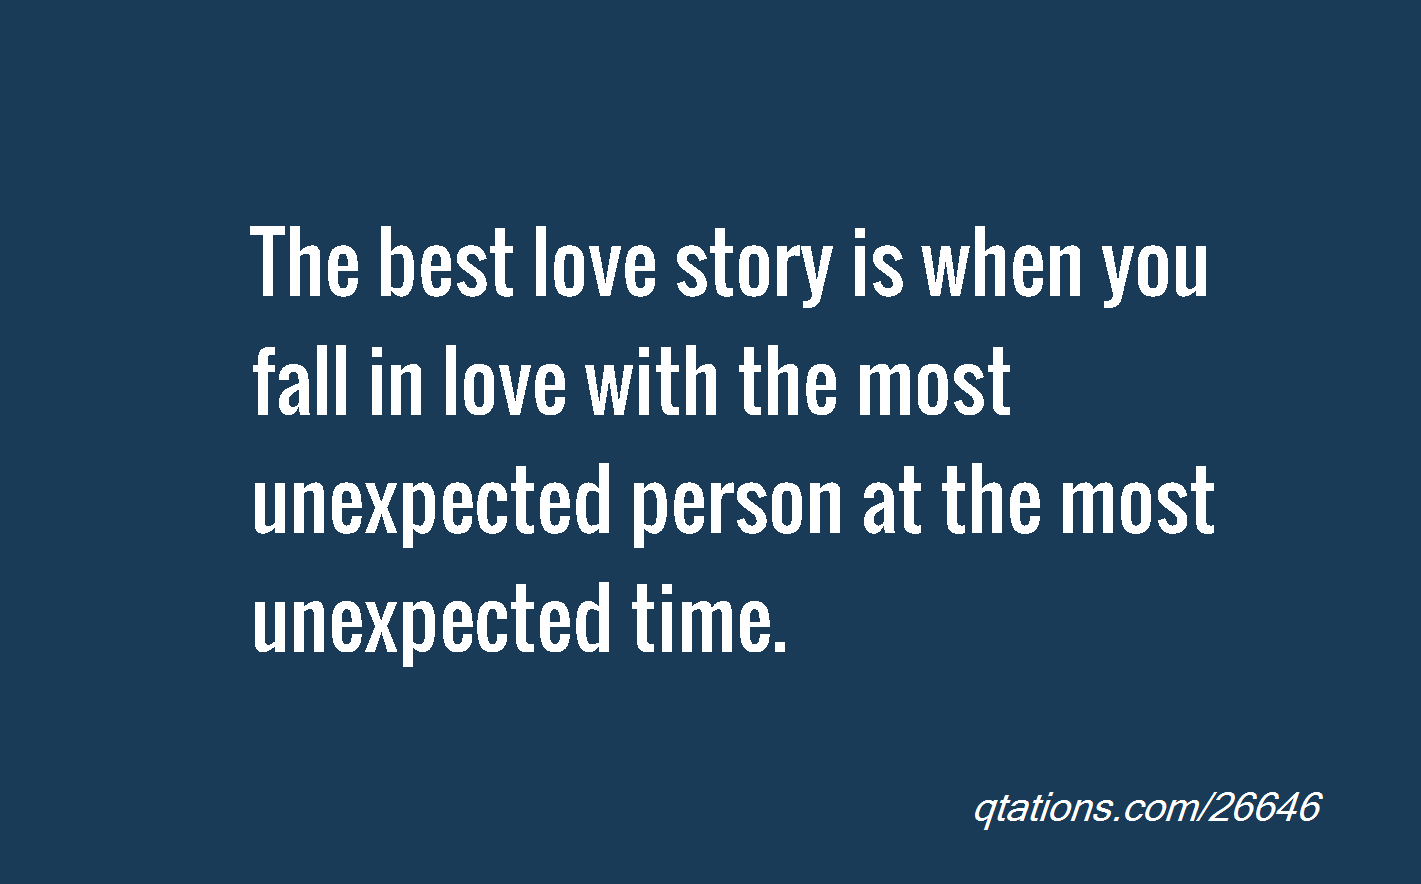 Quotes About Falling In Love Unexpectedly. QuotesGram